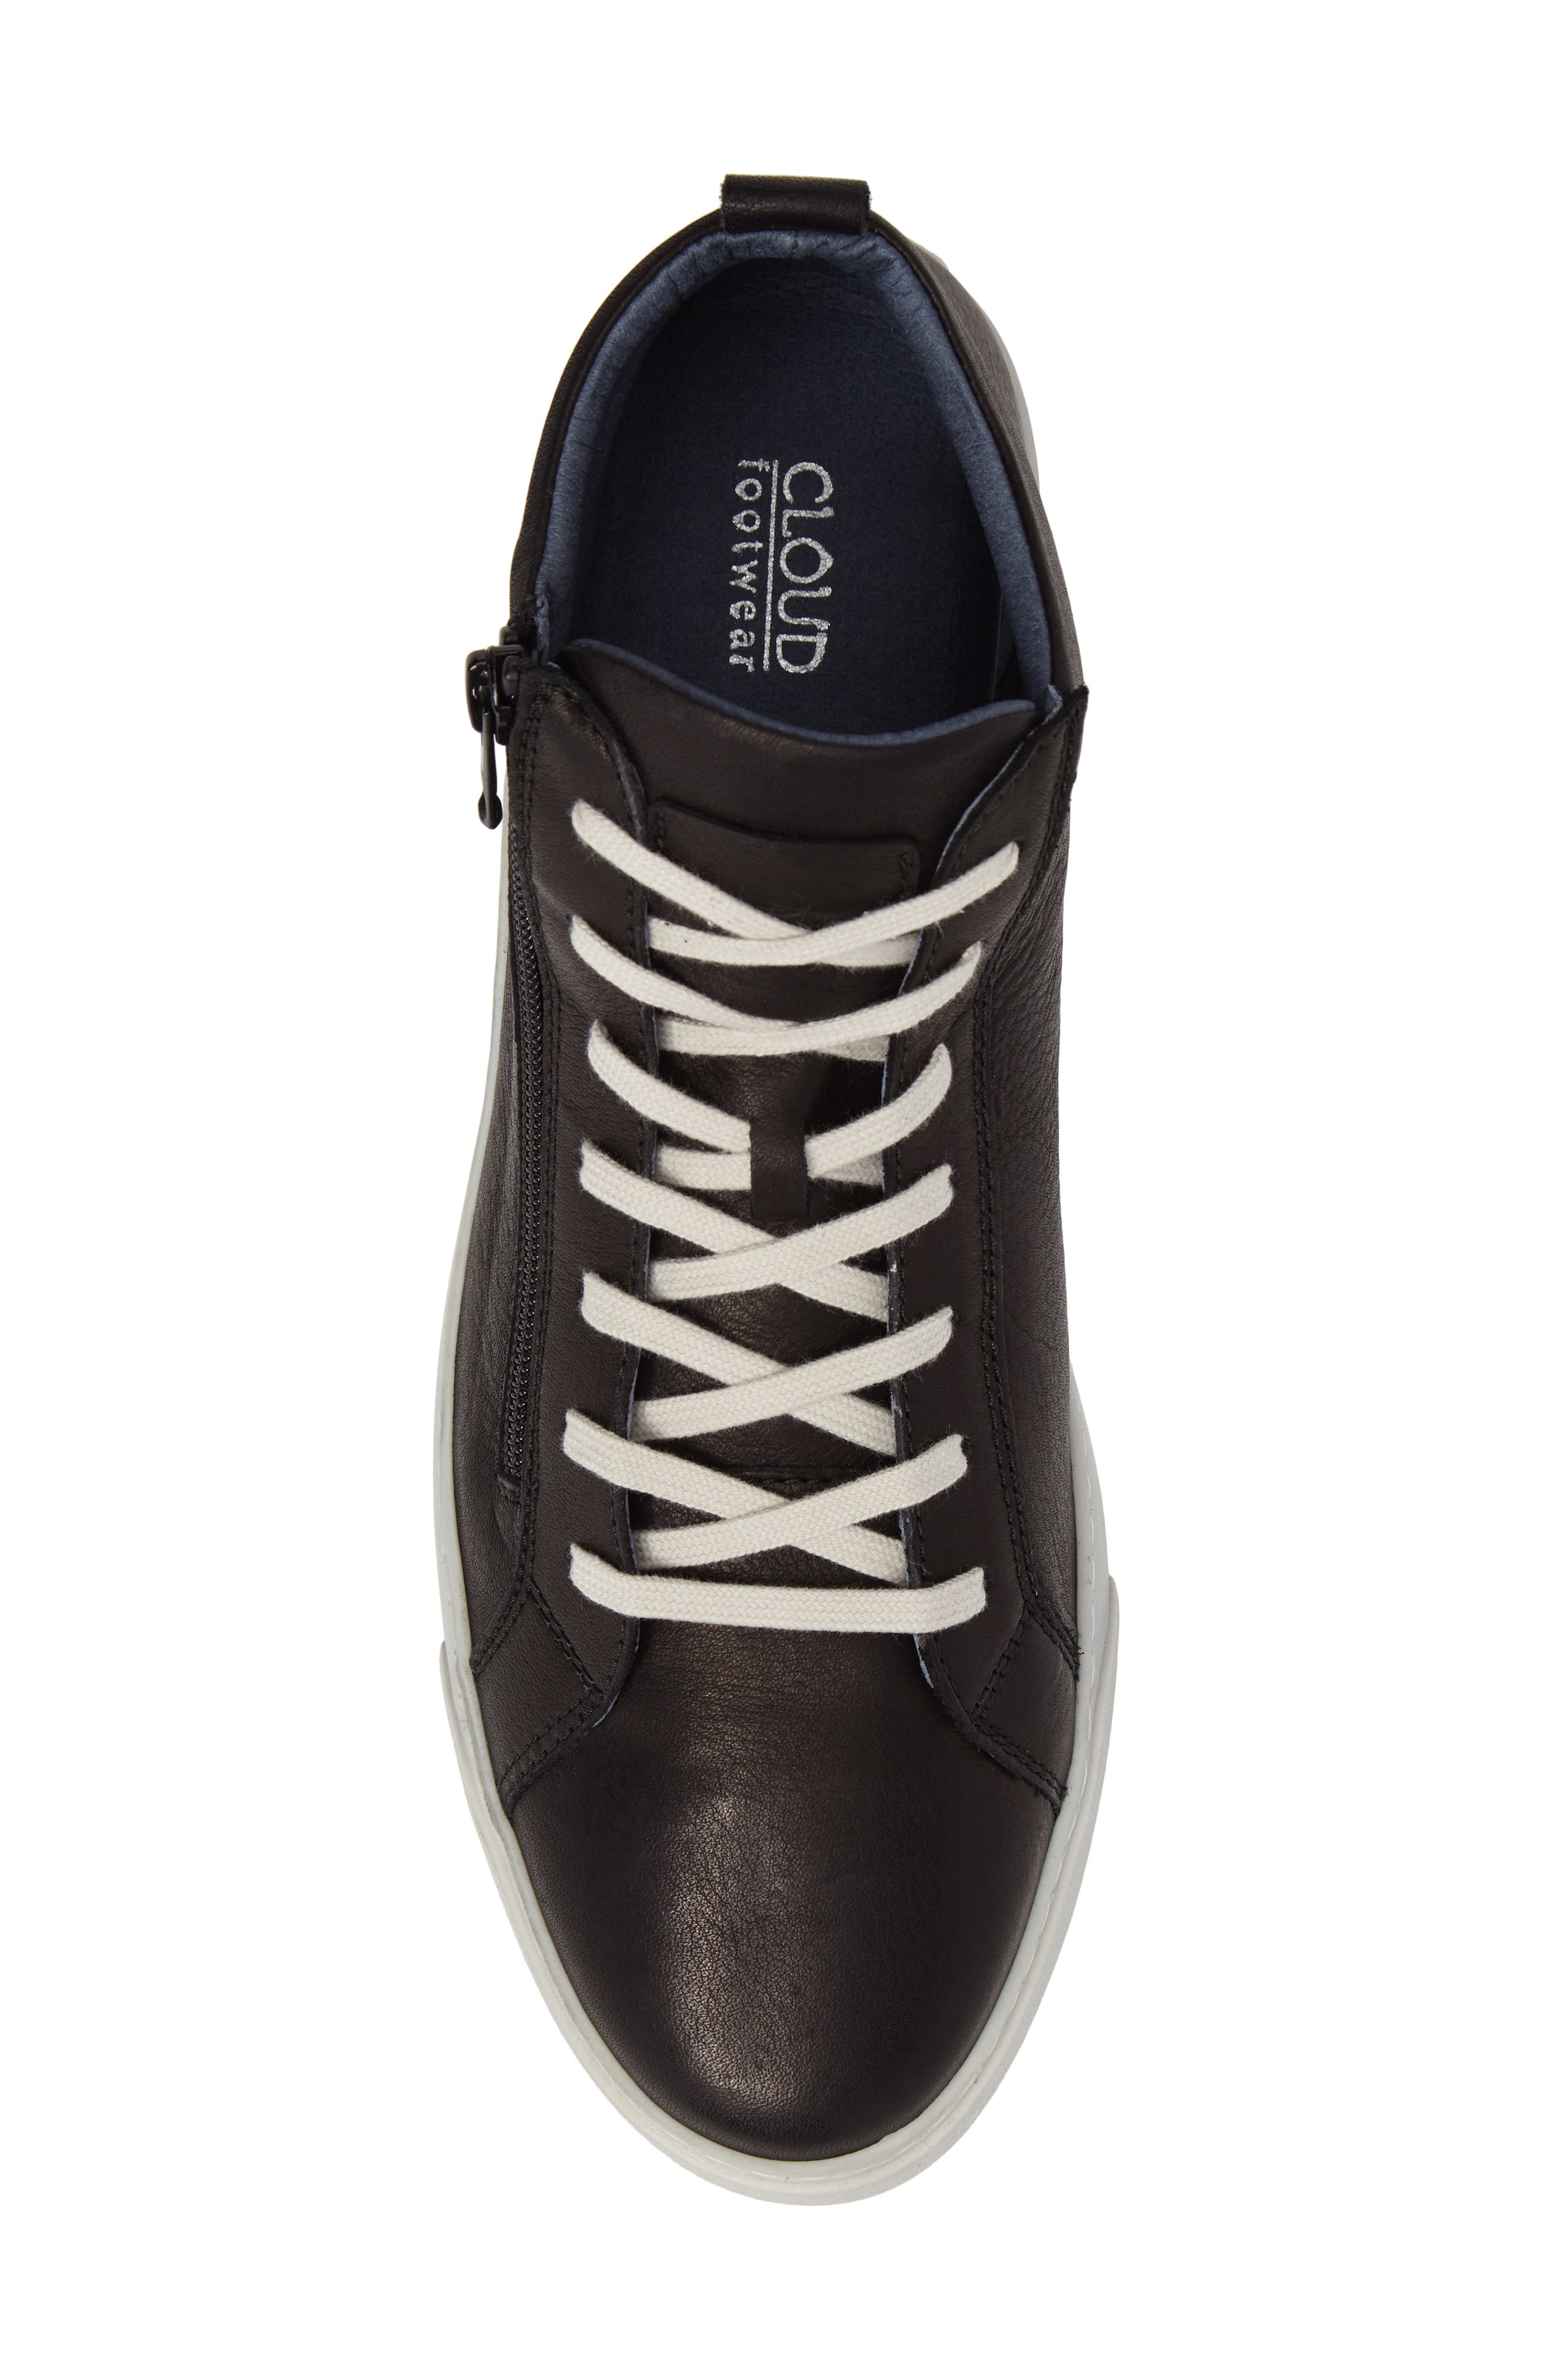 Irwin Mid Top Sneaker,                             Alternate thumbnail 5, color,                             Black Leather